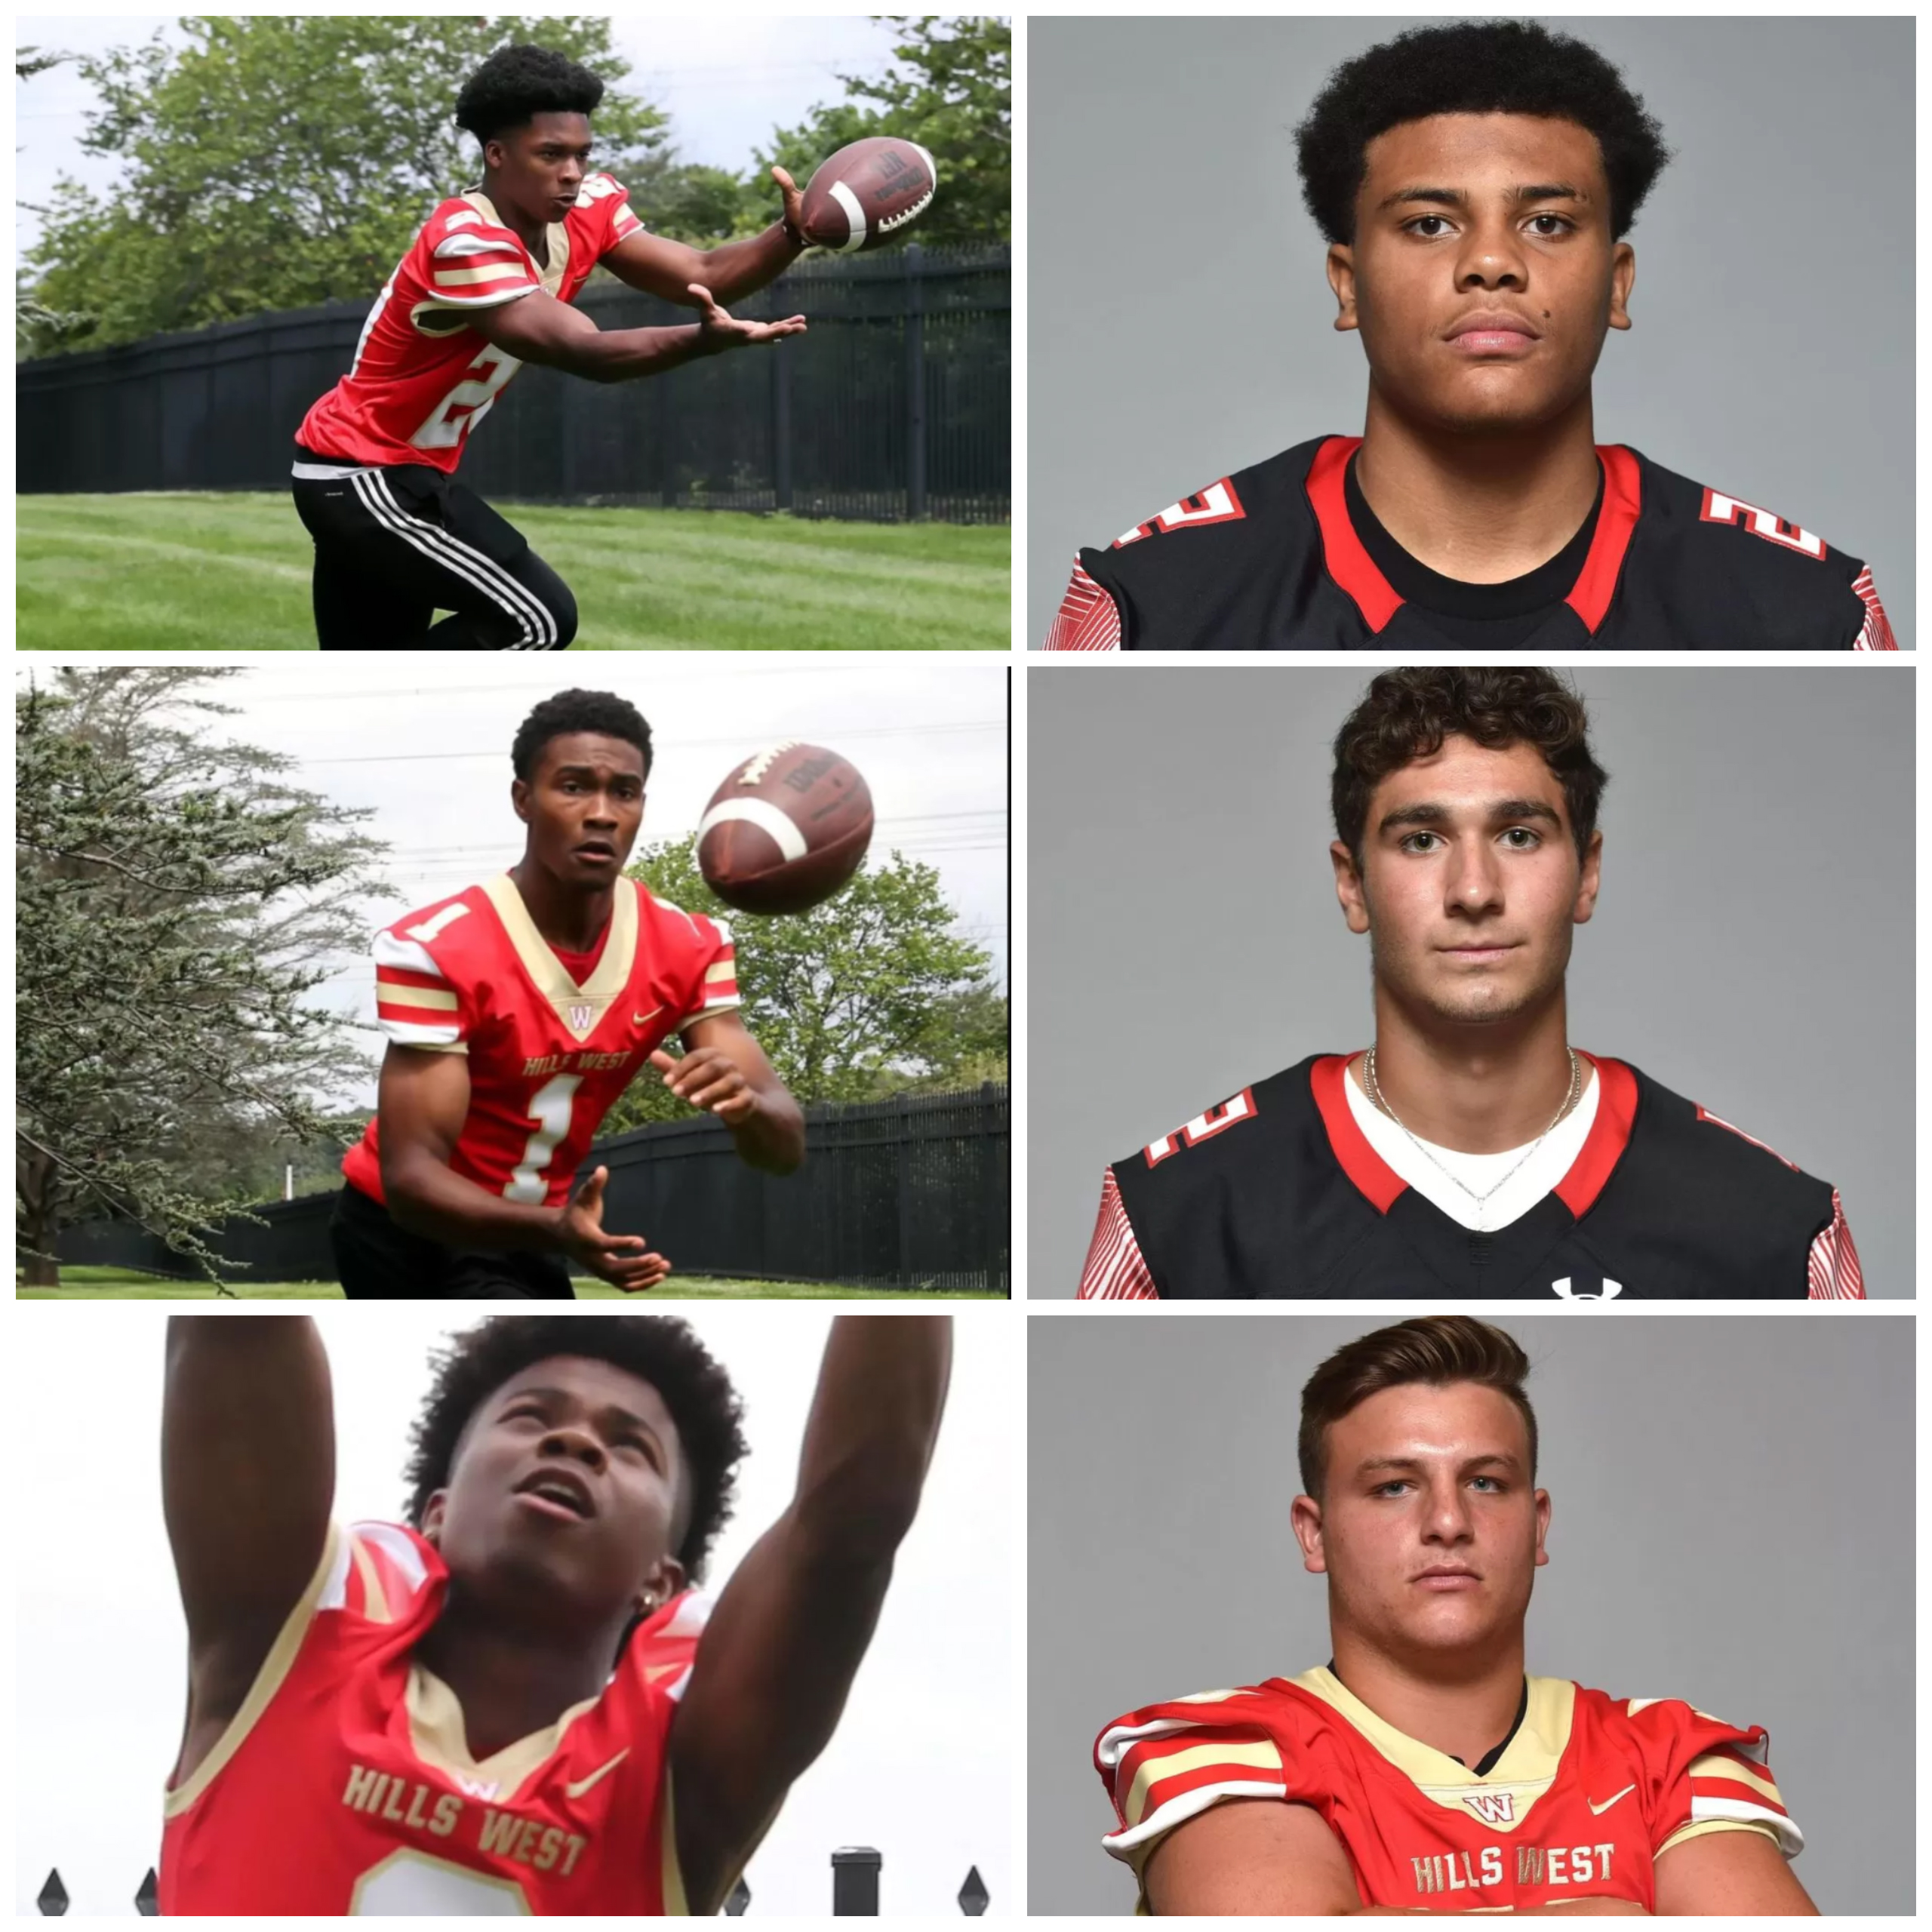 Hills East & West Student-Athletes Ranked In Top 100 Football Players